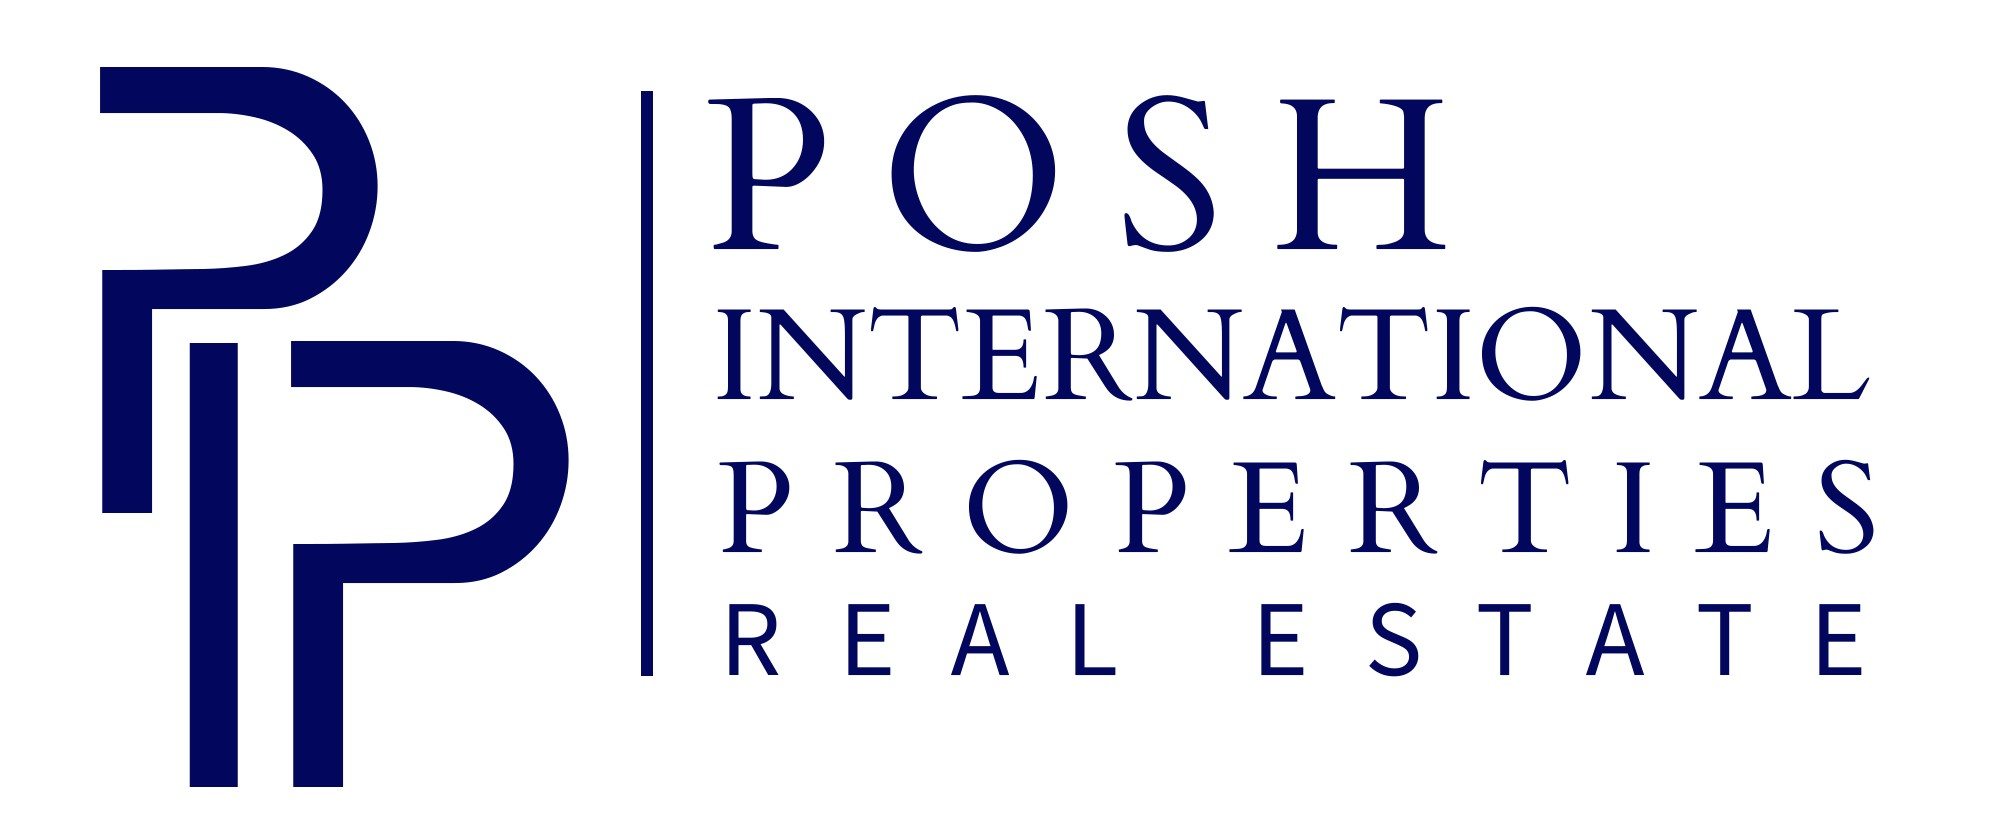 Immobilien Florida Posh International Properties - Immobilien Florida, Naples, Bonita Springs, Bonita Beach, Marco Island, Estero, Cape Coral, Sanibel, Fort Myers Beach, Fort Myers, Kirsten Prizzi - Deutscher Makler Naples